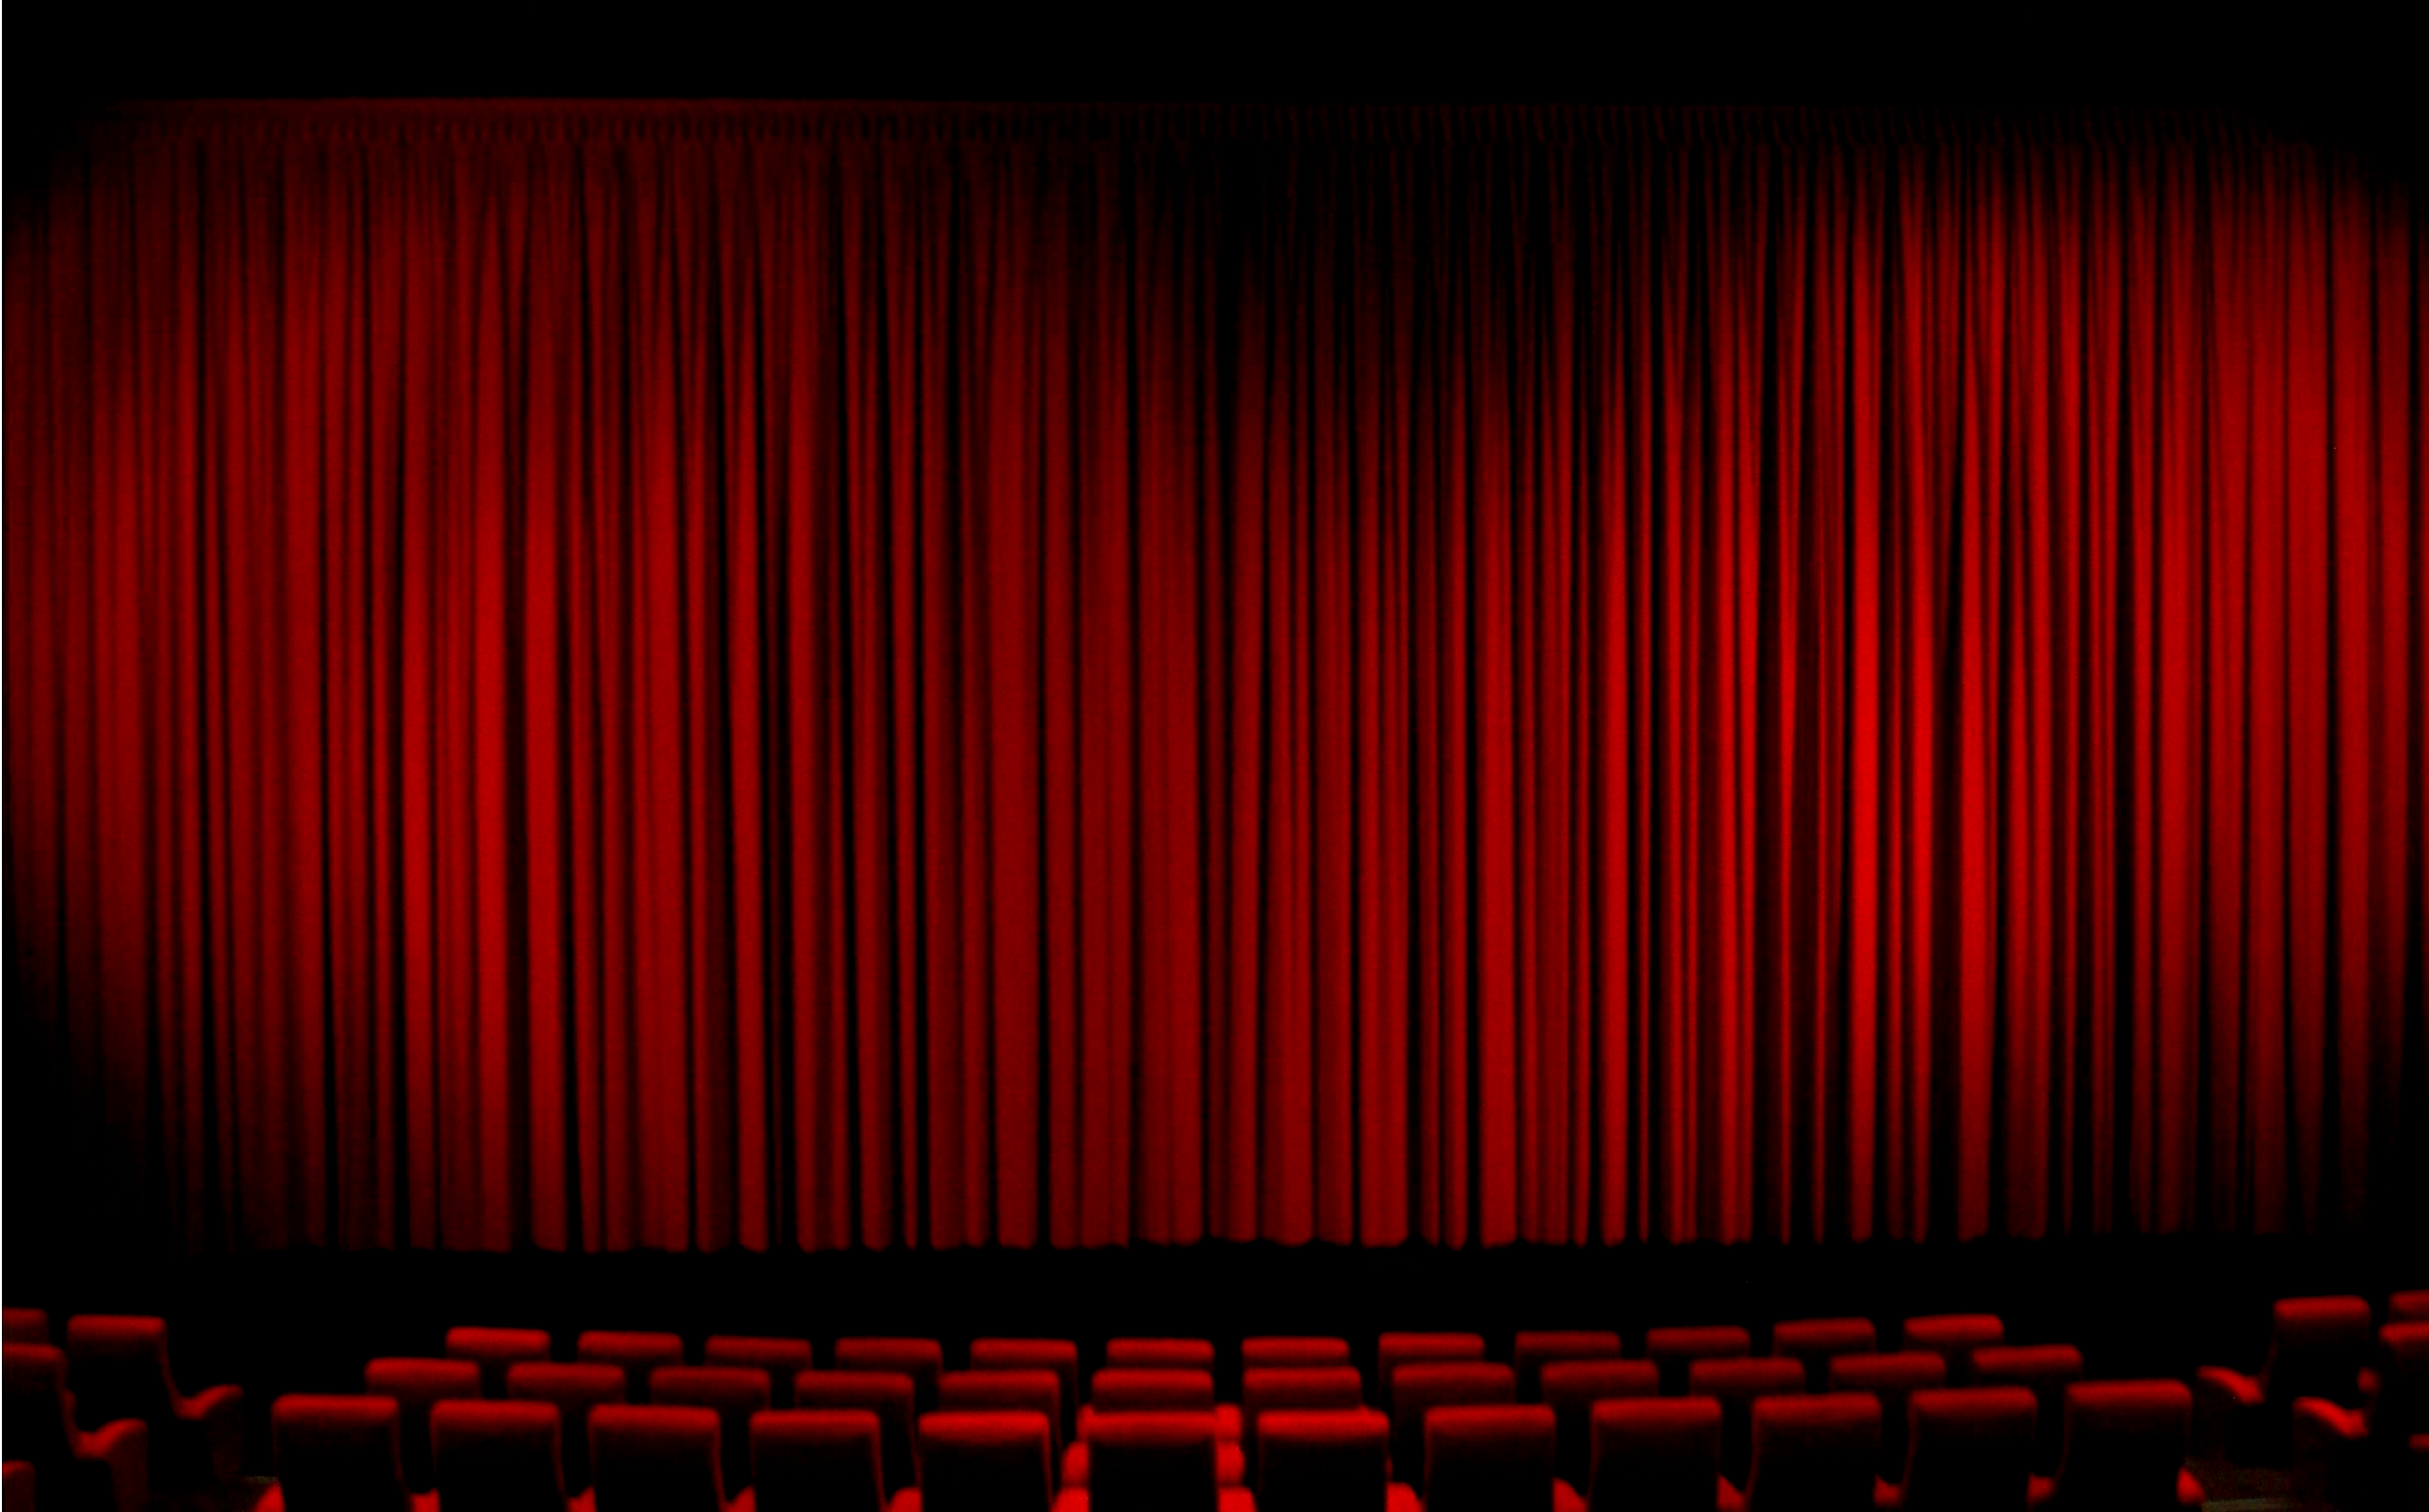 Theater Wallpaper 41 Movie Theater Wallpapers On Wallpaperplay Theater Backgrounds Wallpaper Cave Pin B Movie Theater What Is Digital Home Theater Furniture